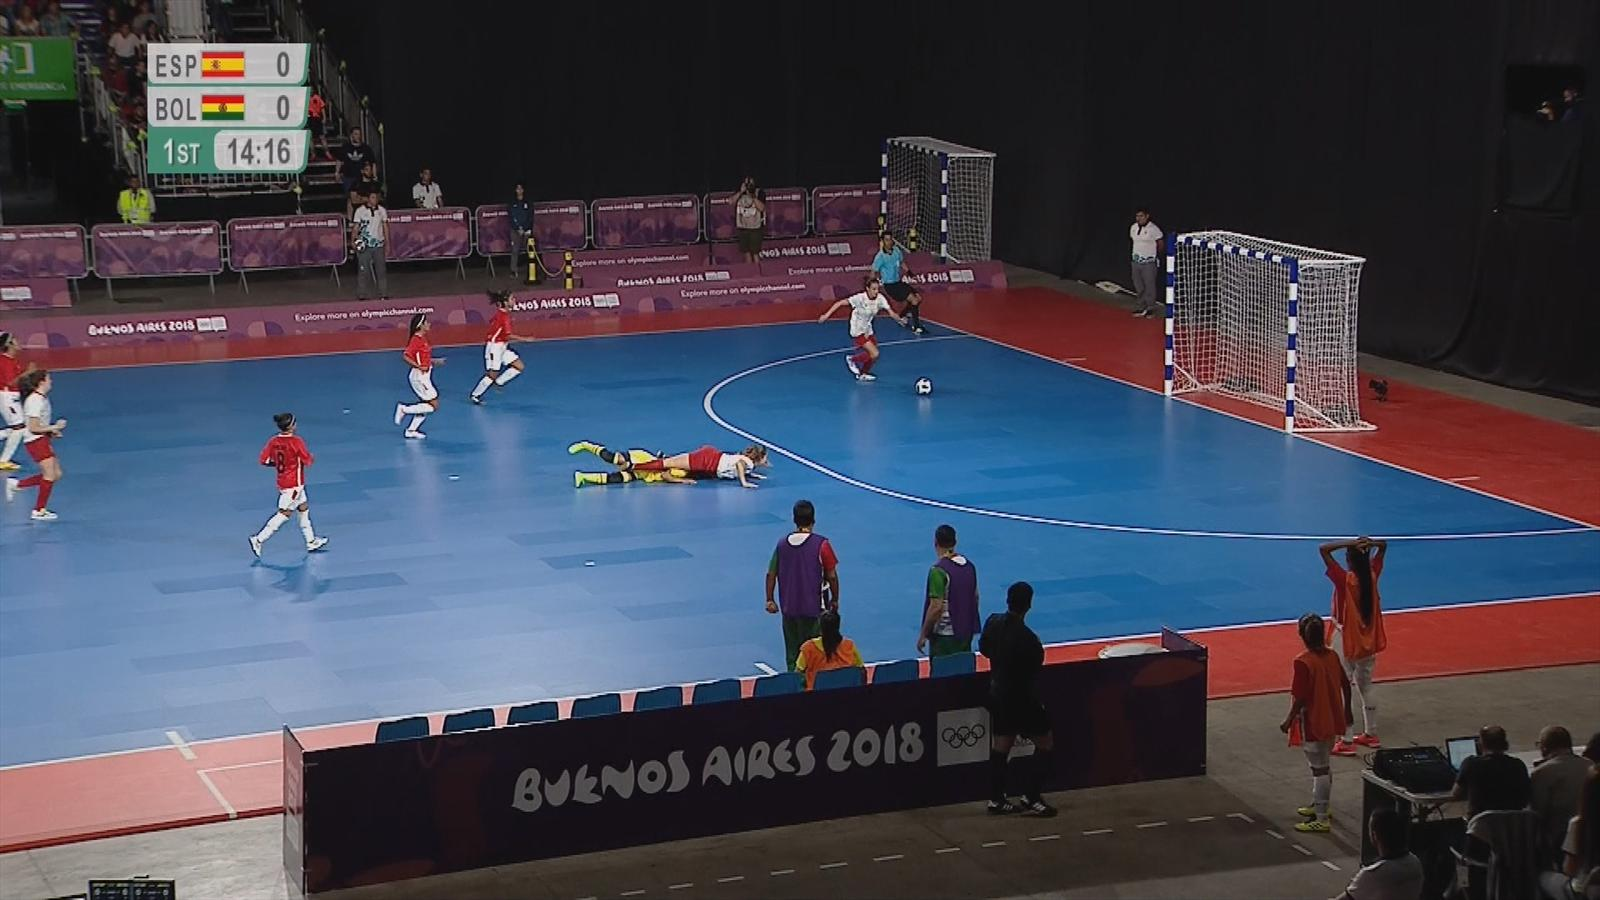 6d608f474c VIDEO - Futsal highlights  Thailand hit 14 against Trinidad and Tobago